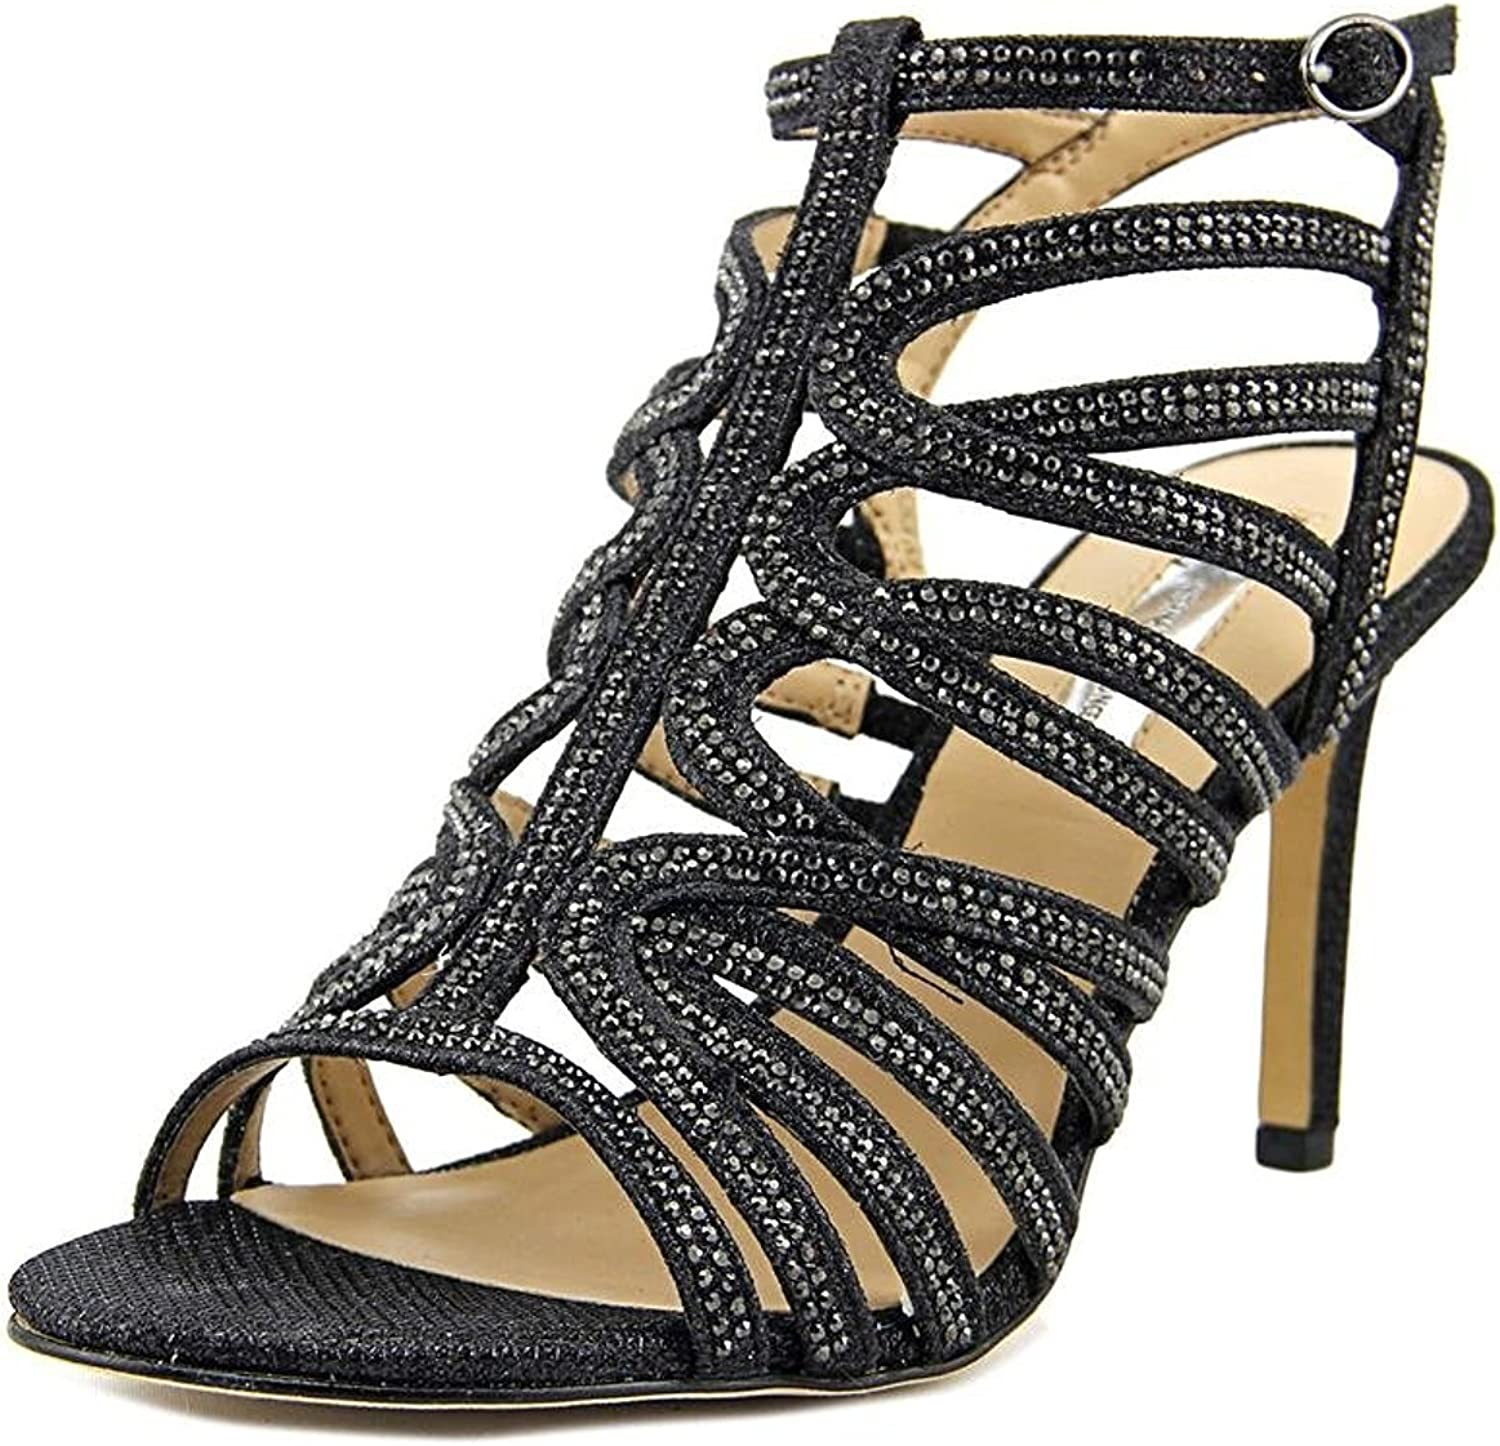 INC International Concepts Womens Gawdie Open Toe Bridal, Black, Size 10.0